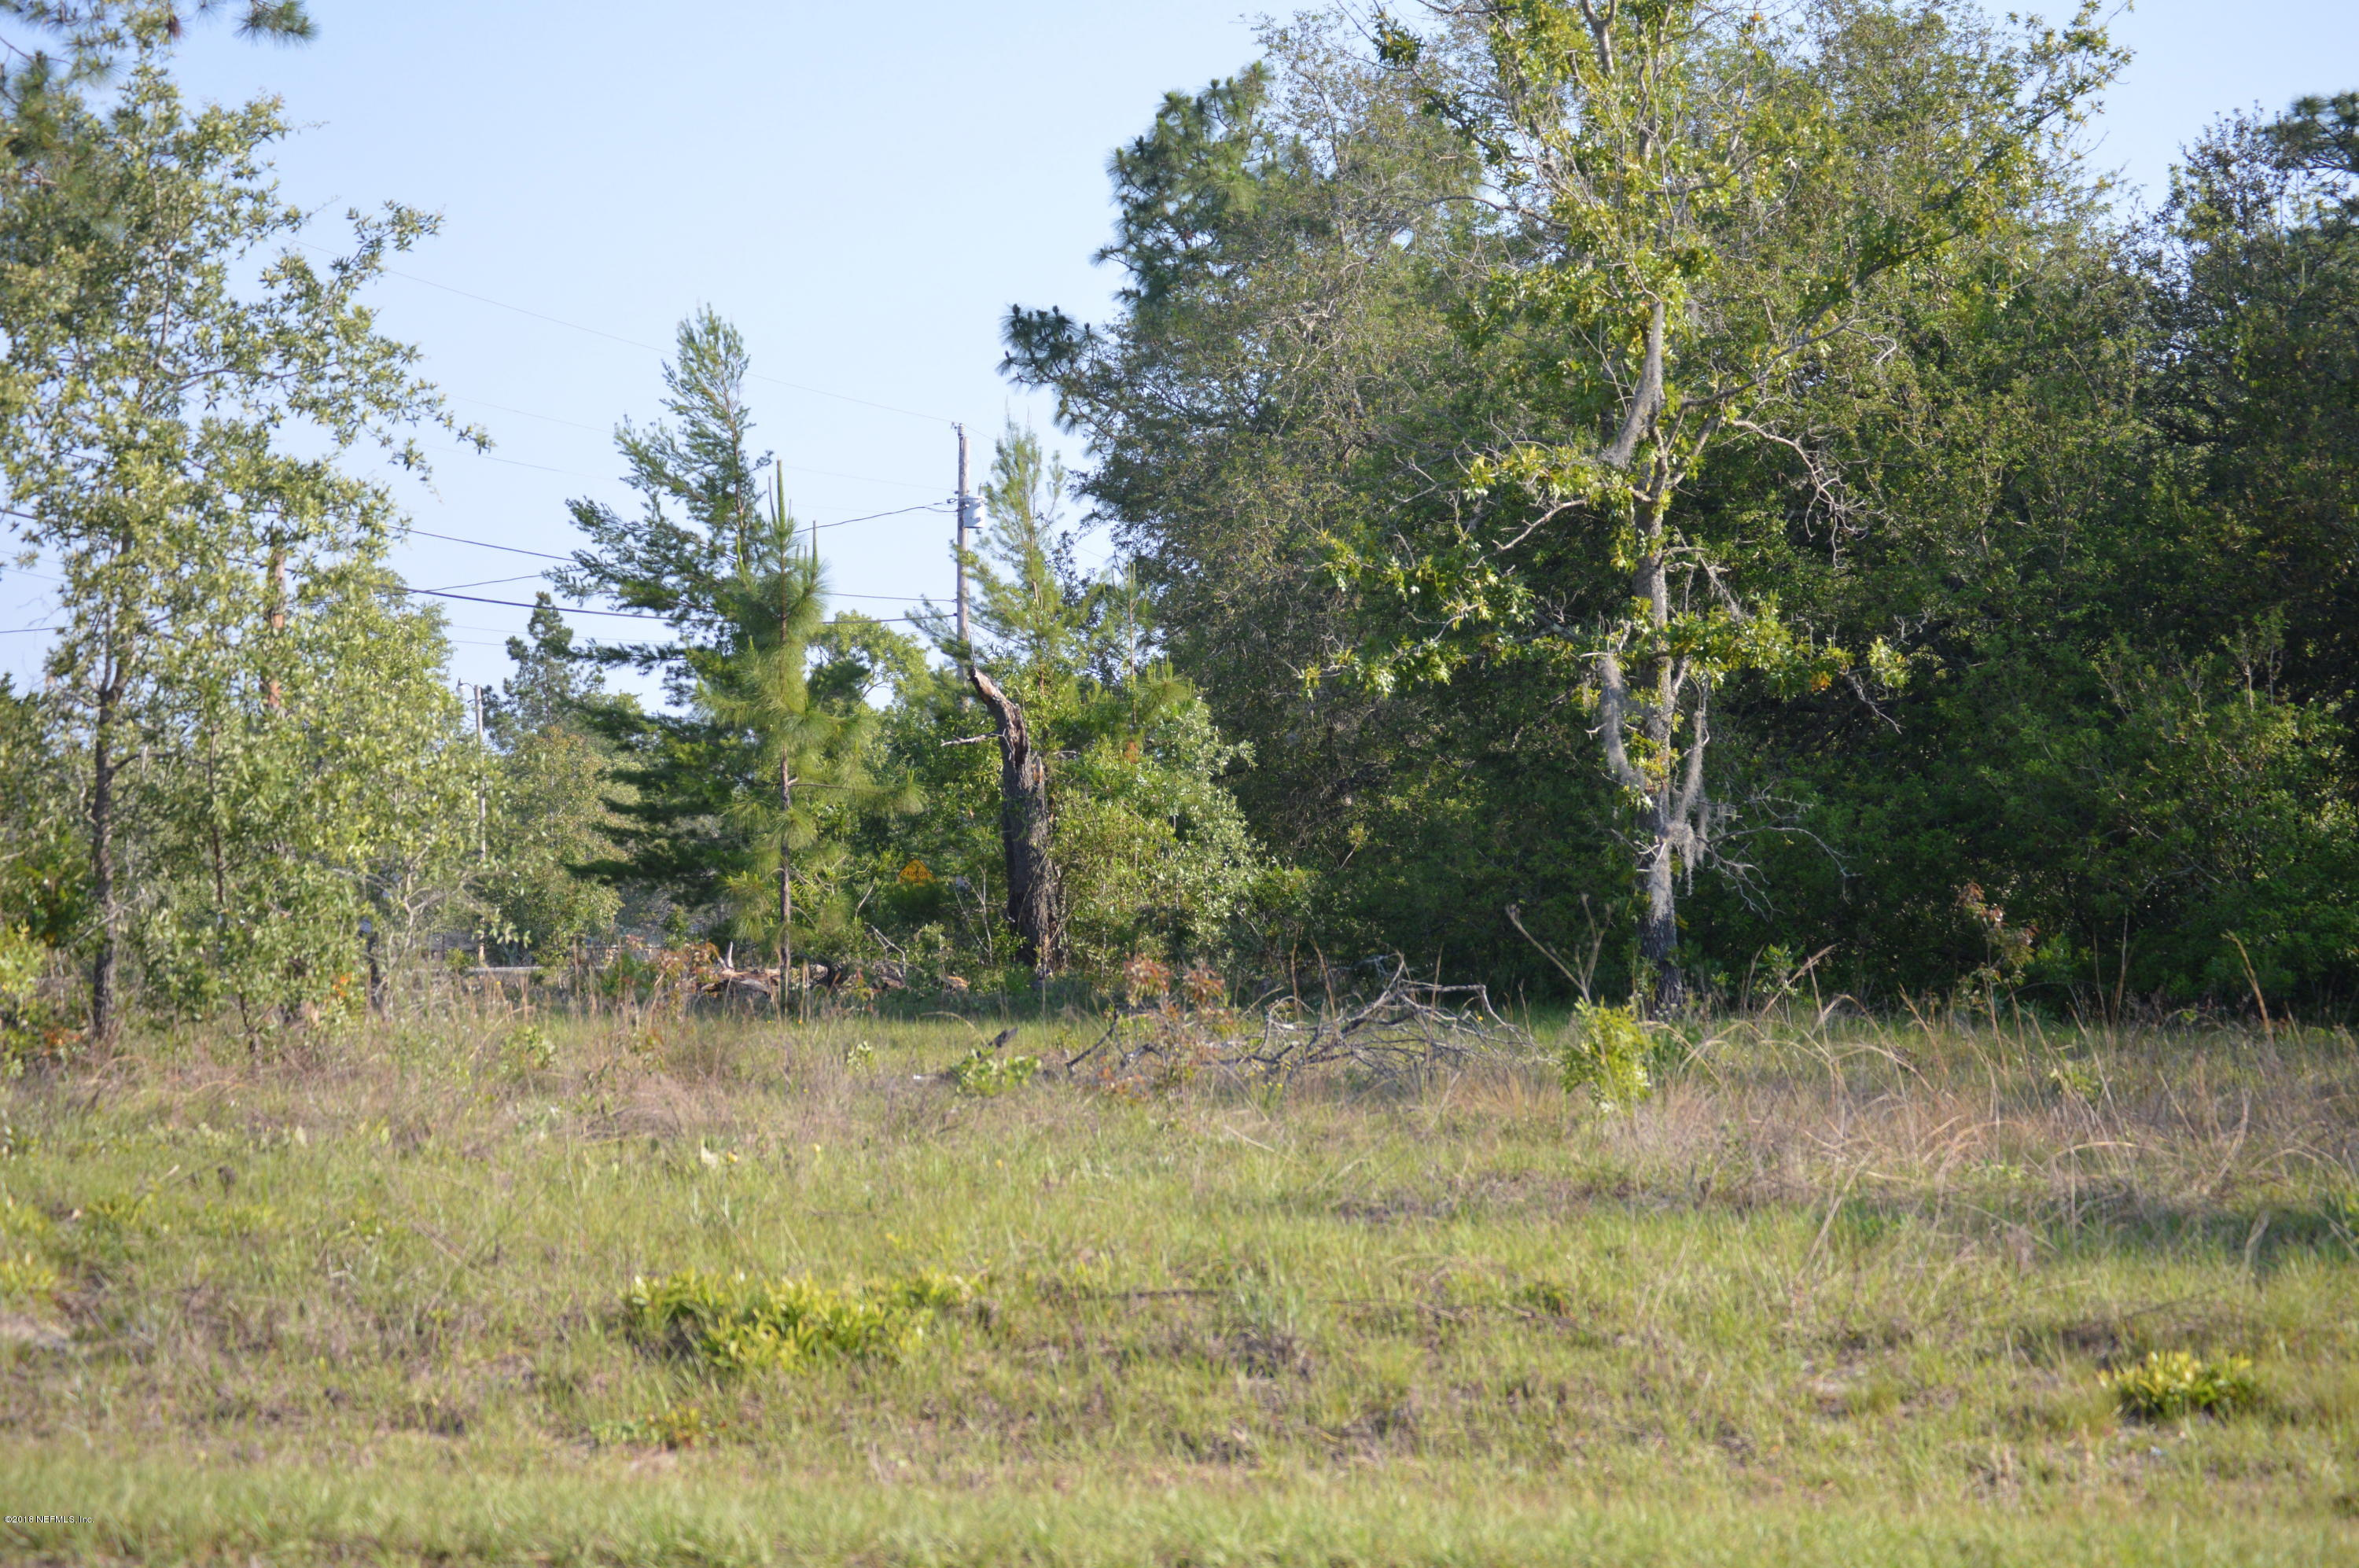 5730 COUNTY ROAD 214, KEYSTONE HEIGHTS, FLORIDA 32656, ,Vacant land,For sale,COUNTY ROAD 214,935896